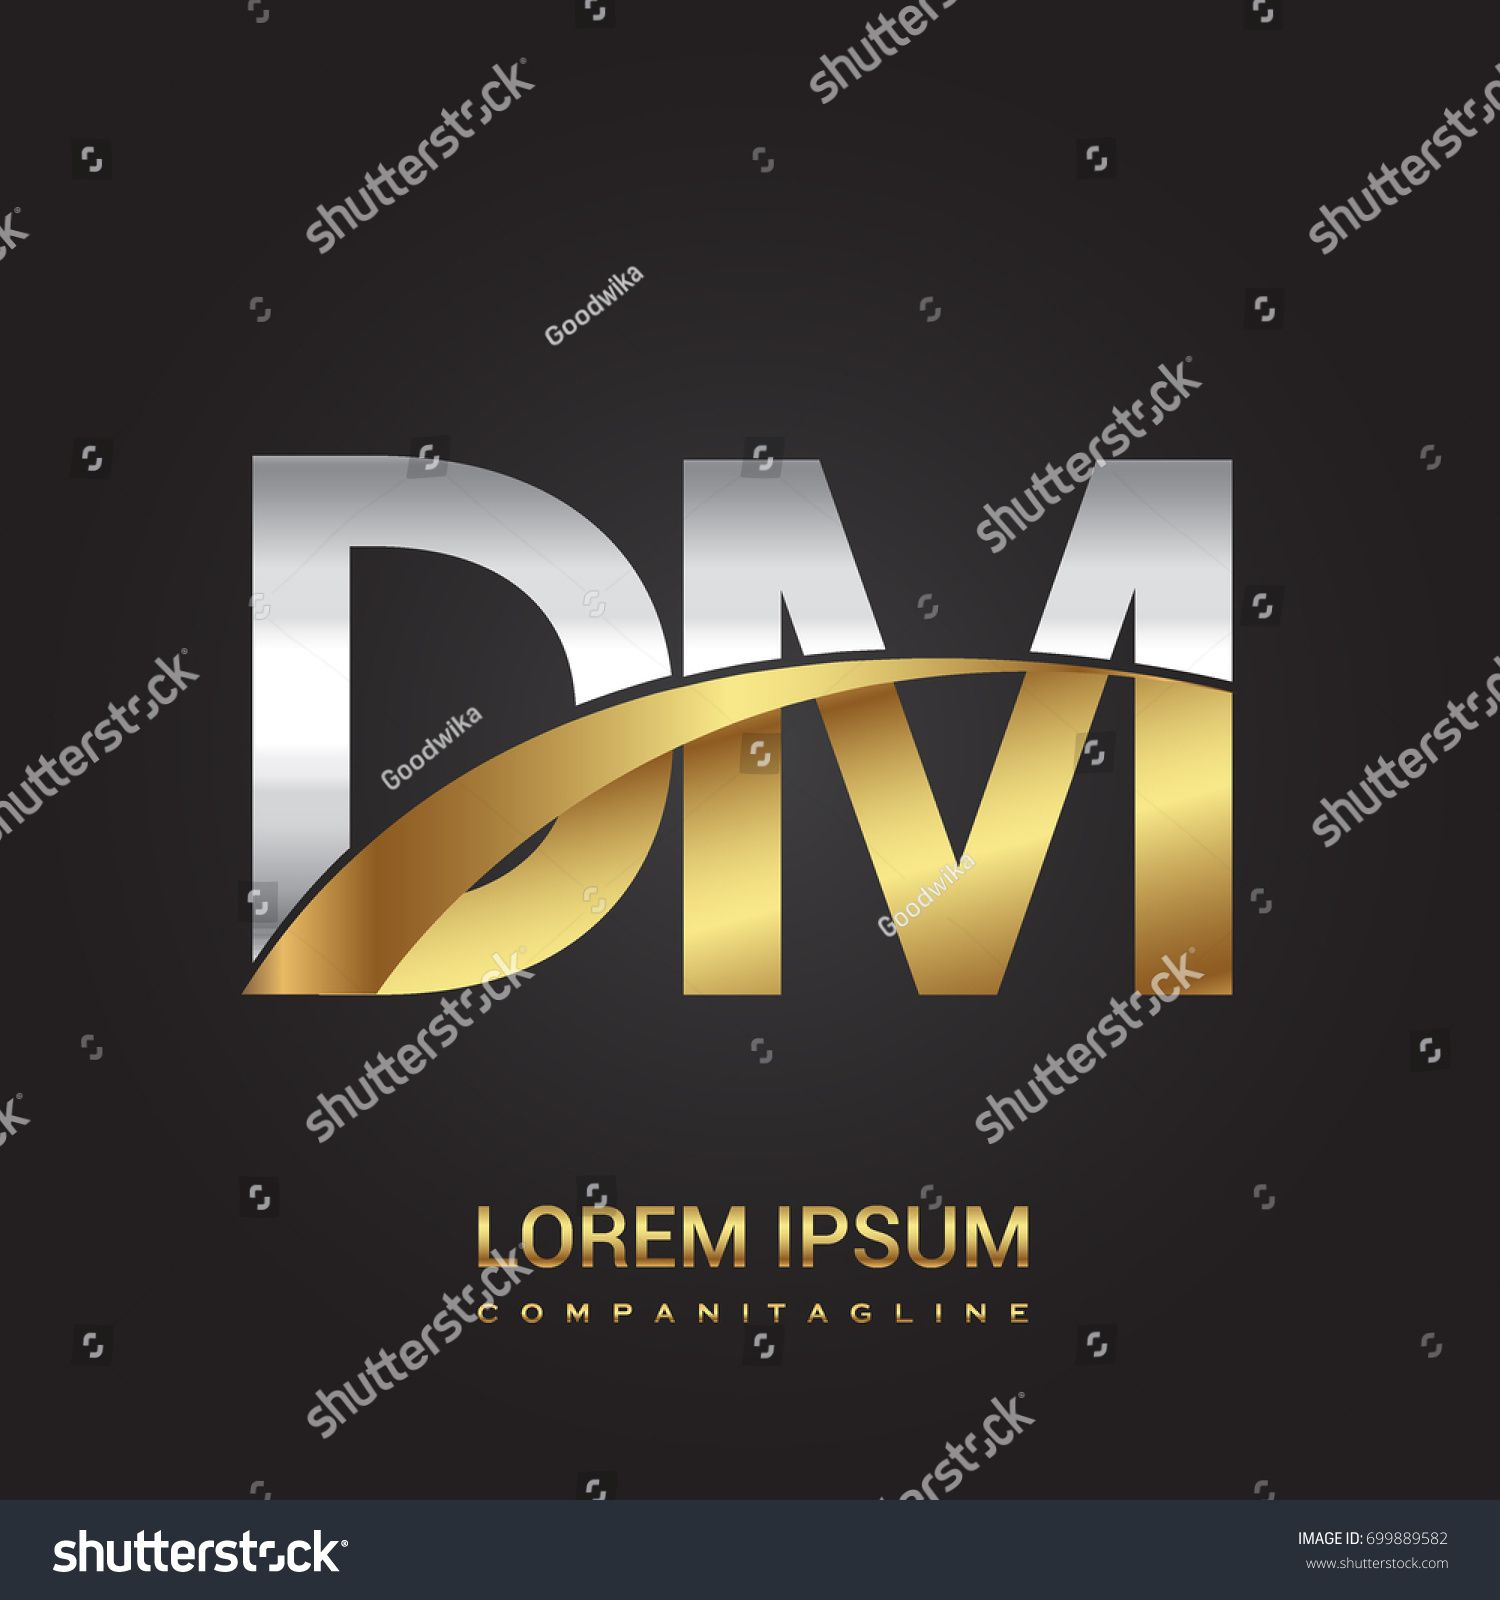 Initial Letter DM Logotype Company Name Colored Gold And